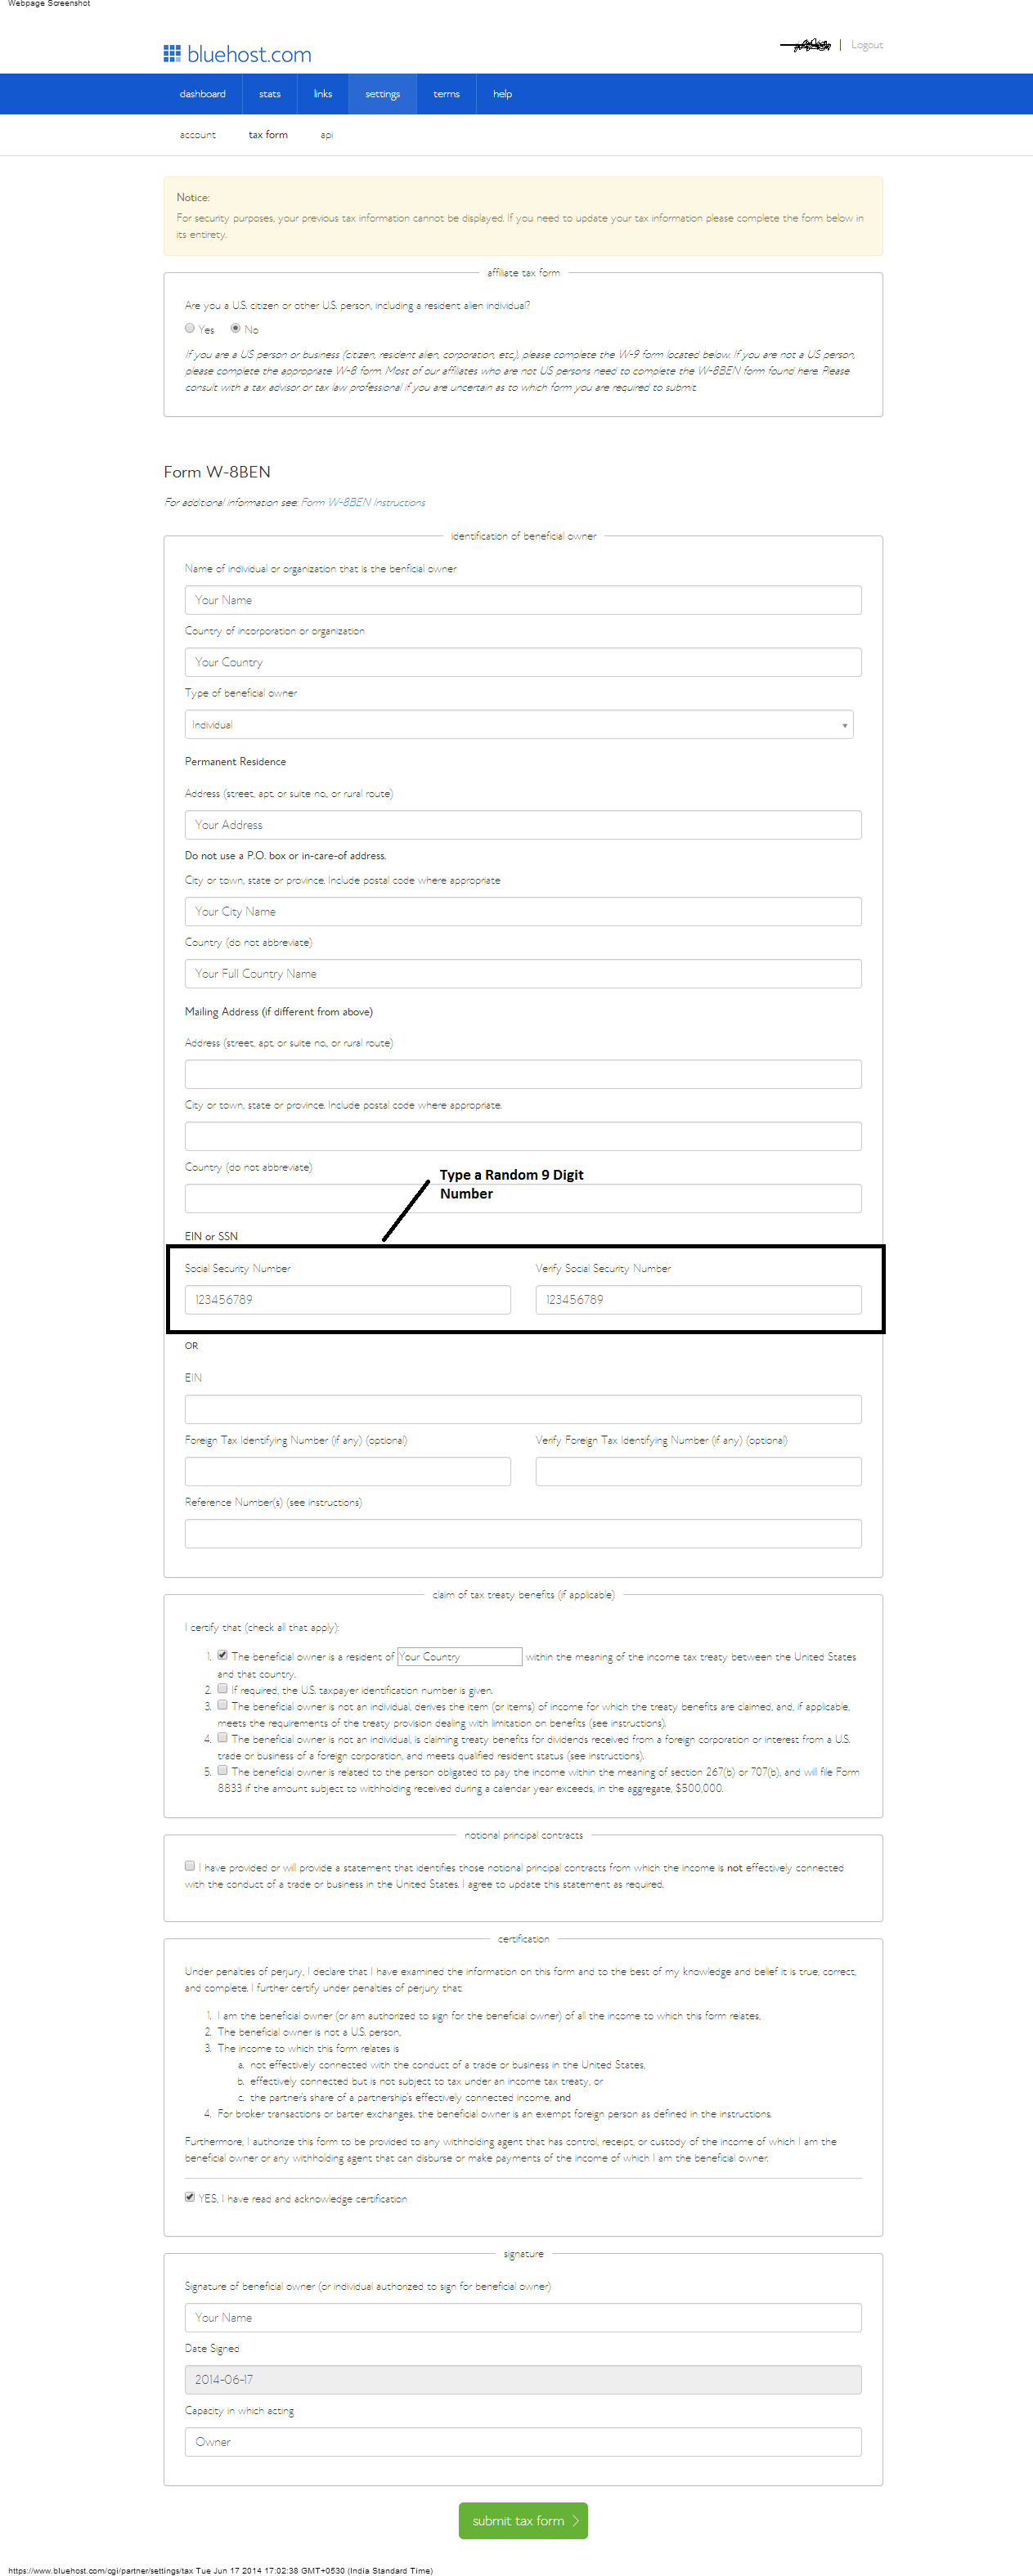 How to Fill W-8BEN Tax Form - For Affiliate Marketers